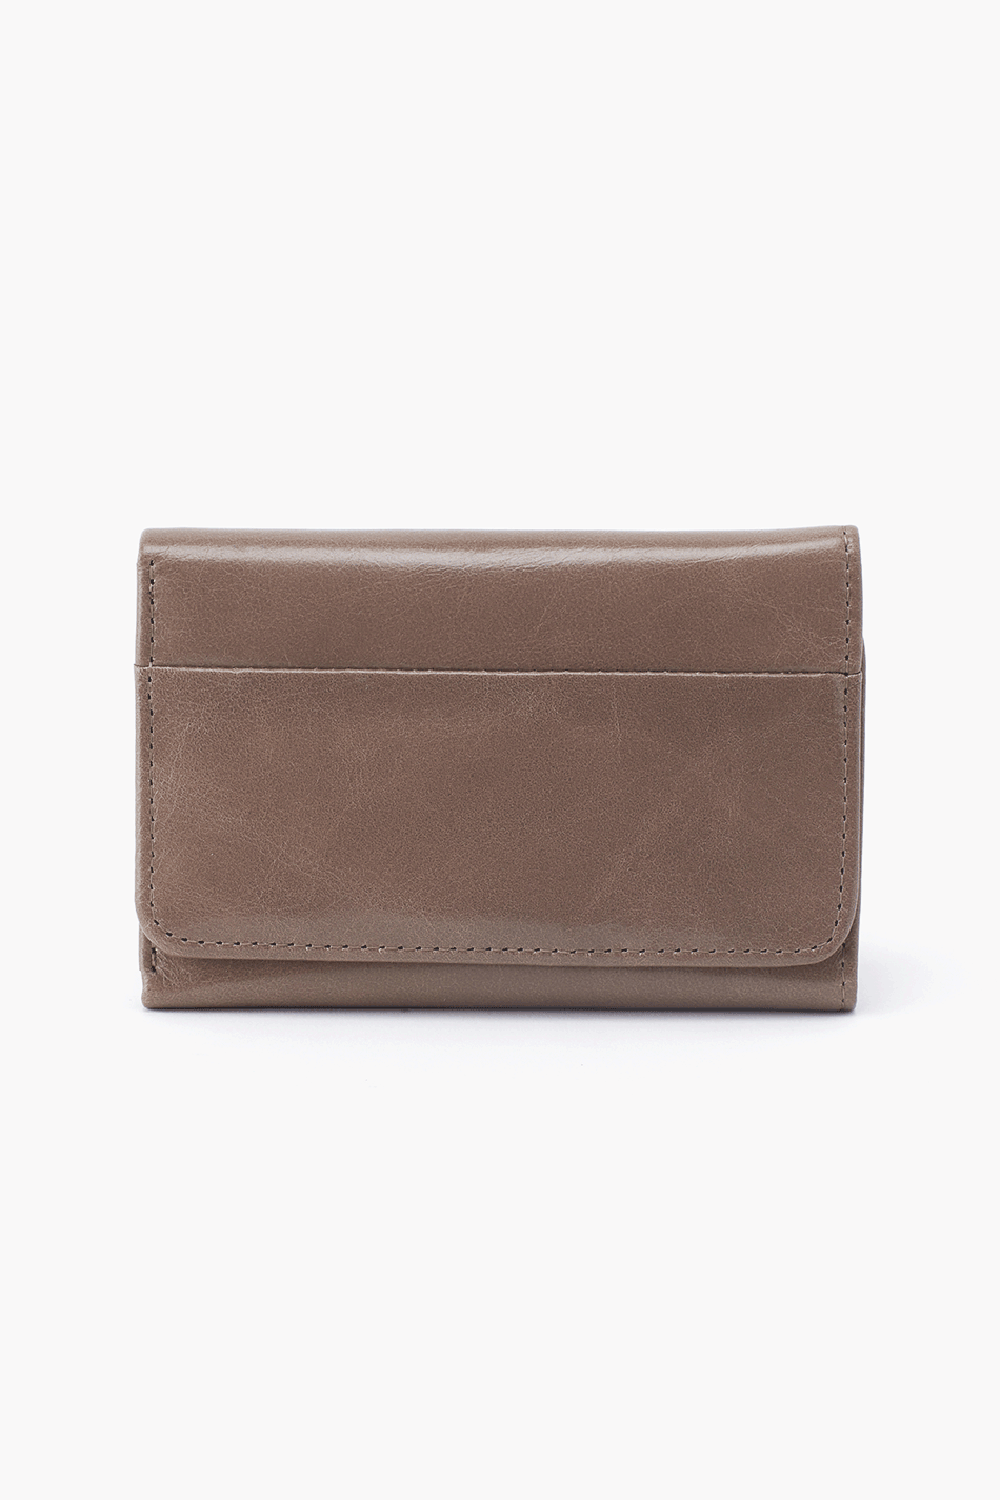 Jill Mini Wallet - Gravel